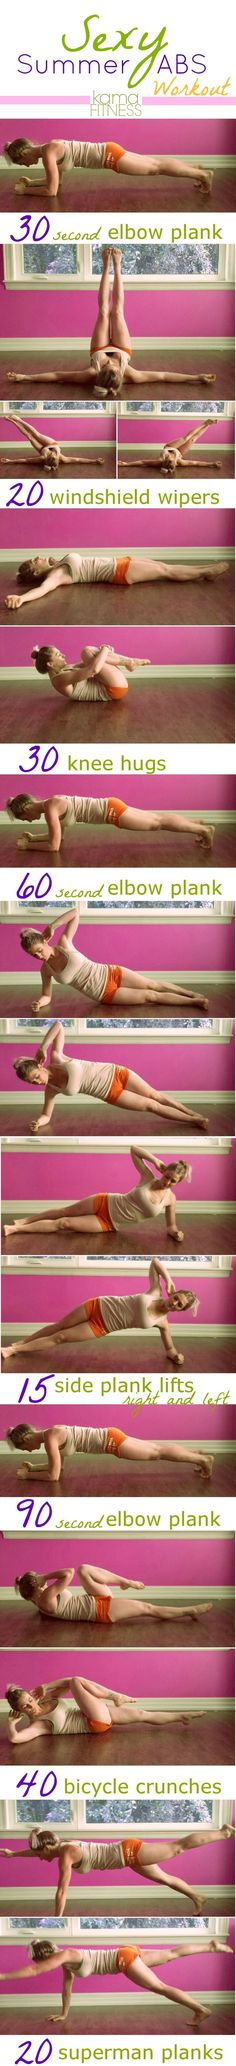 Sexy Abs Workout Planks! www.fitness4anywhere.com